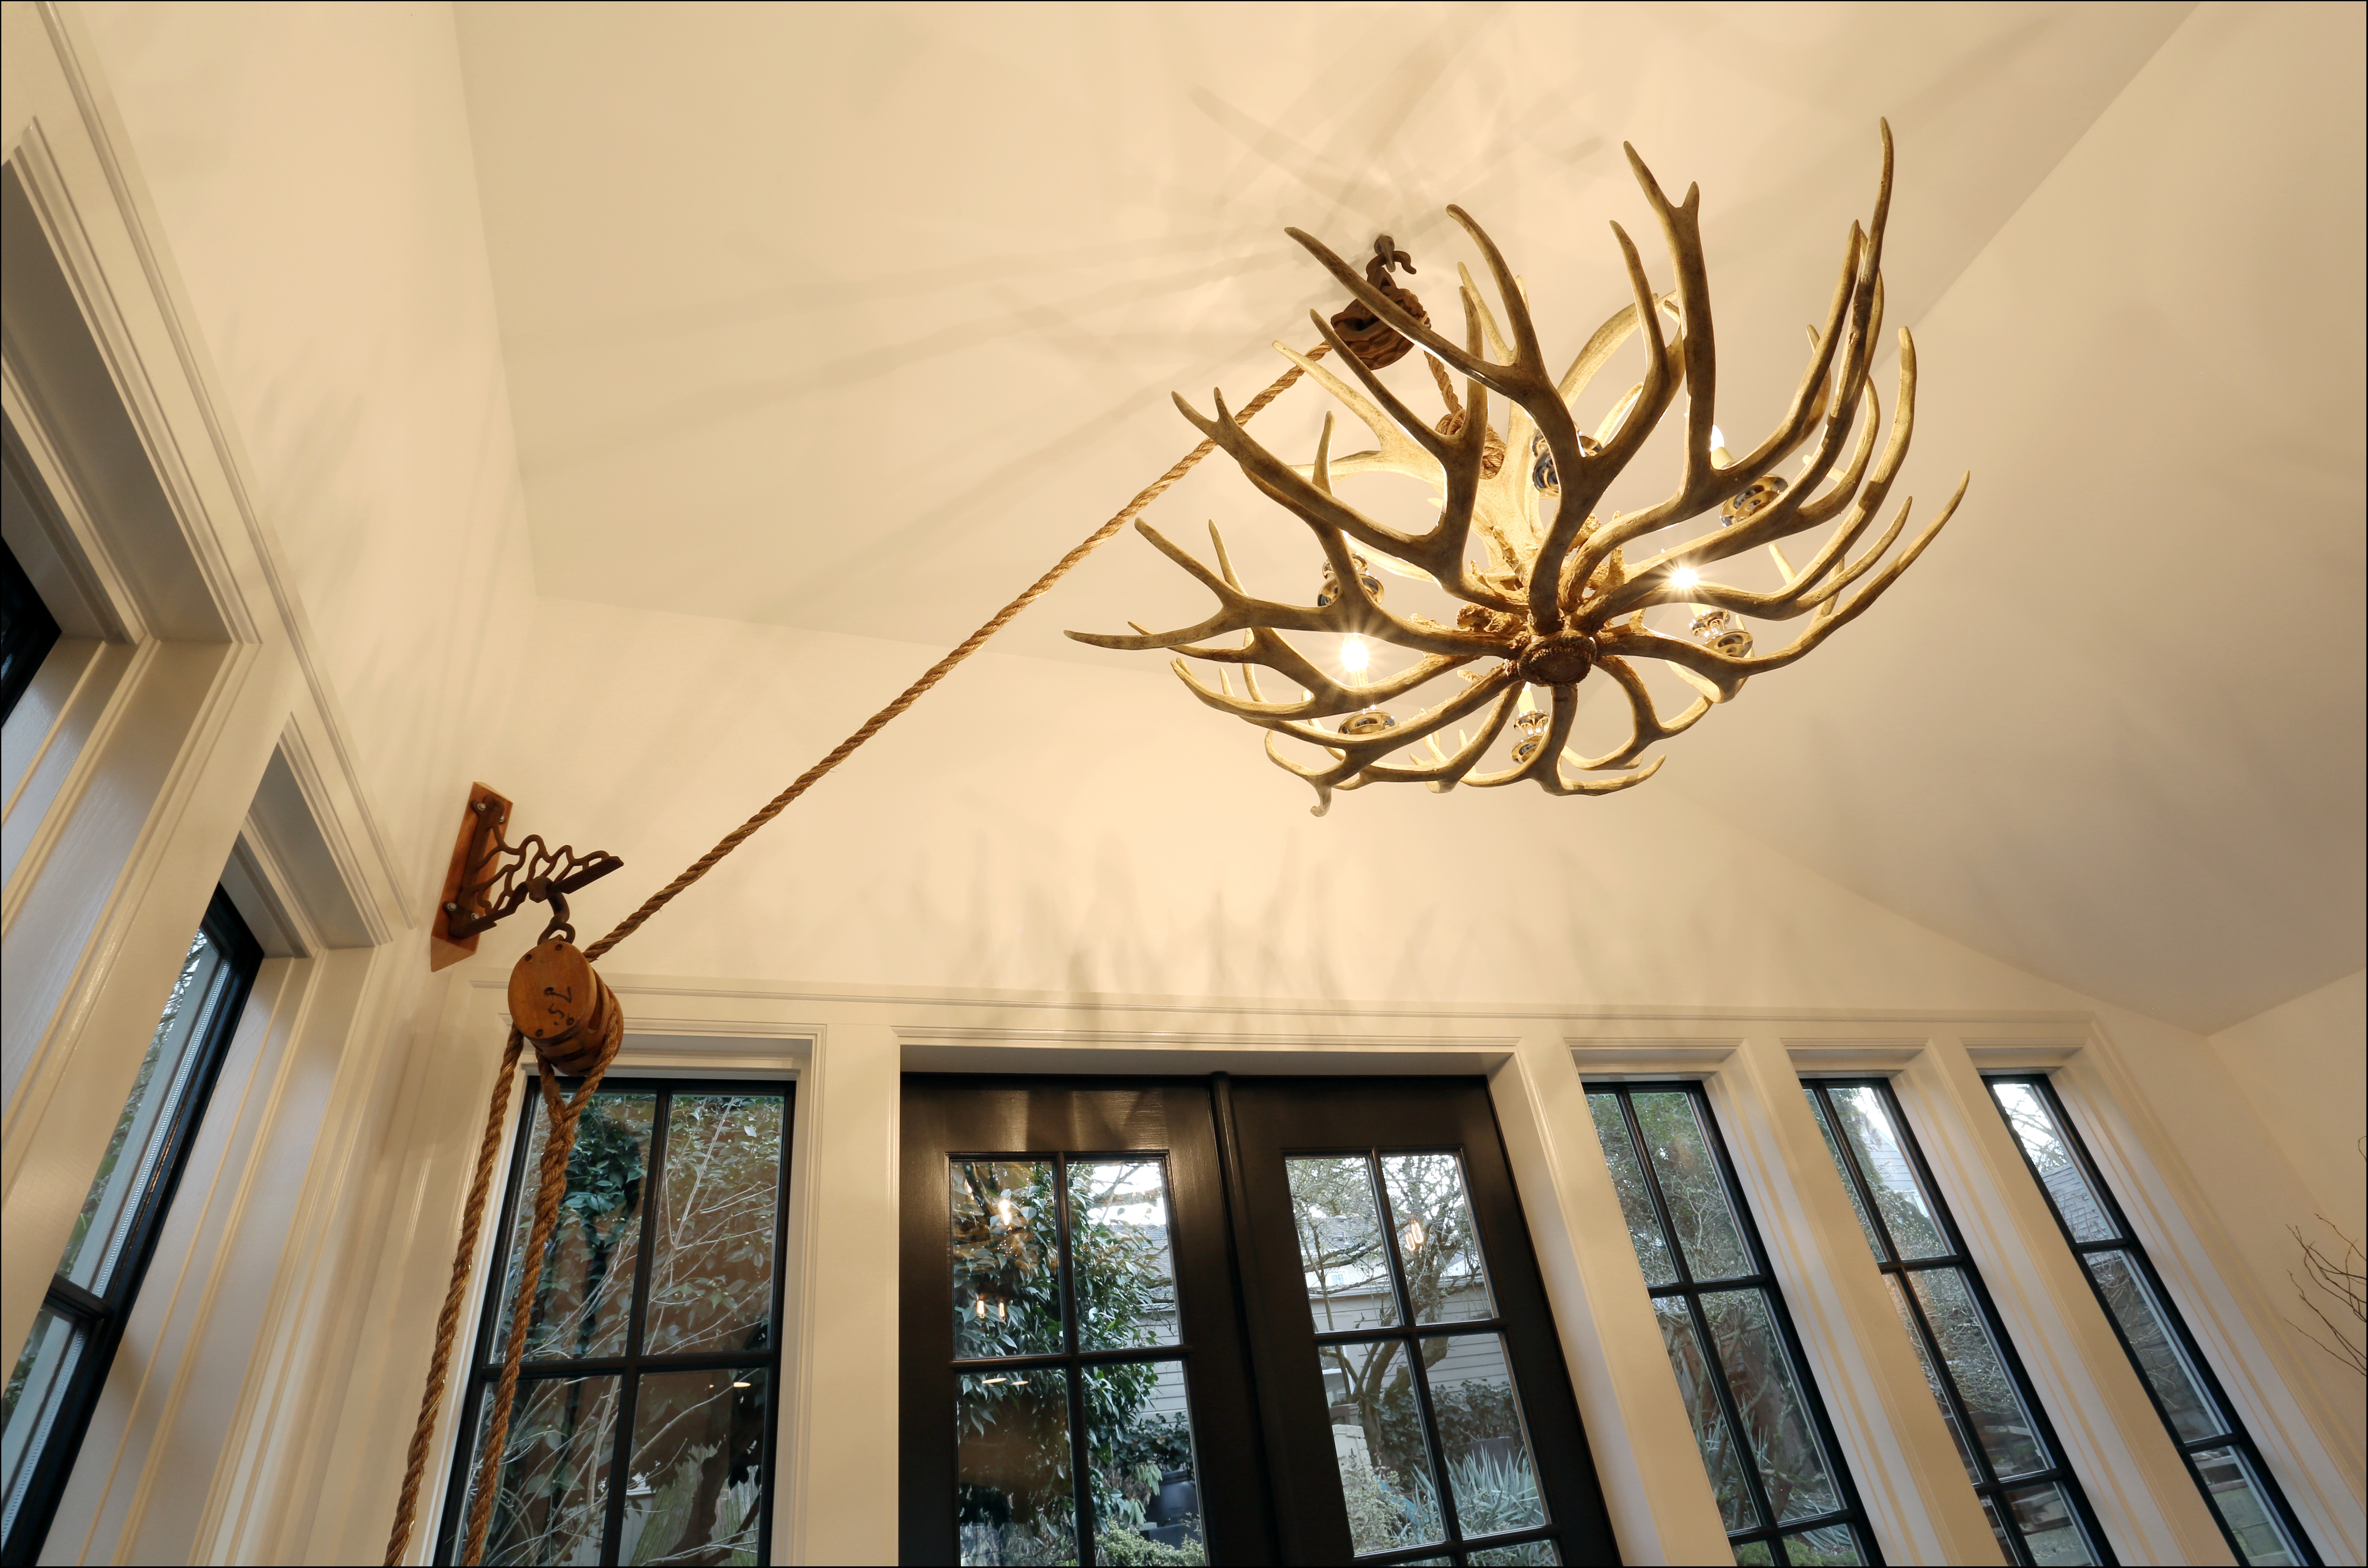 Steal this idea summer design contest bracket f division this antler chandelier is a focal point in this nook design by kristyn bester arubaitofo Image collections